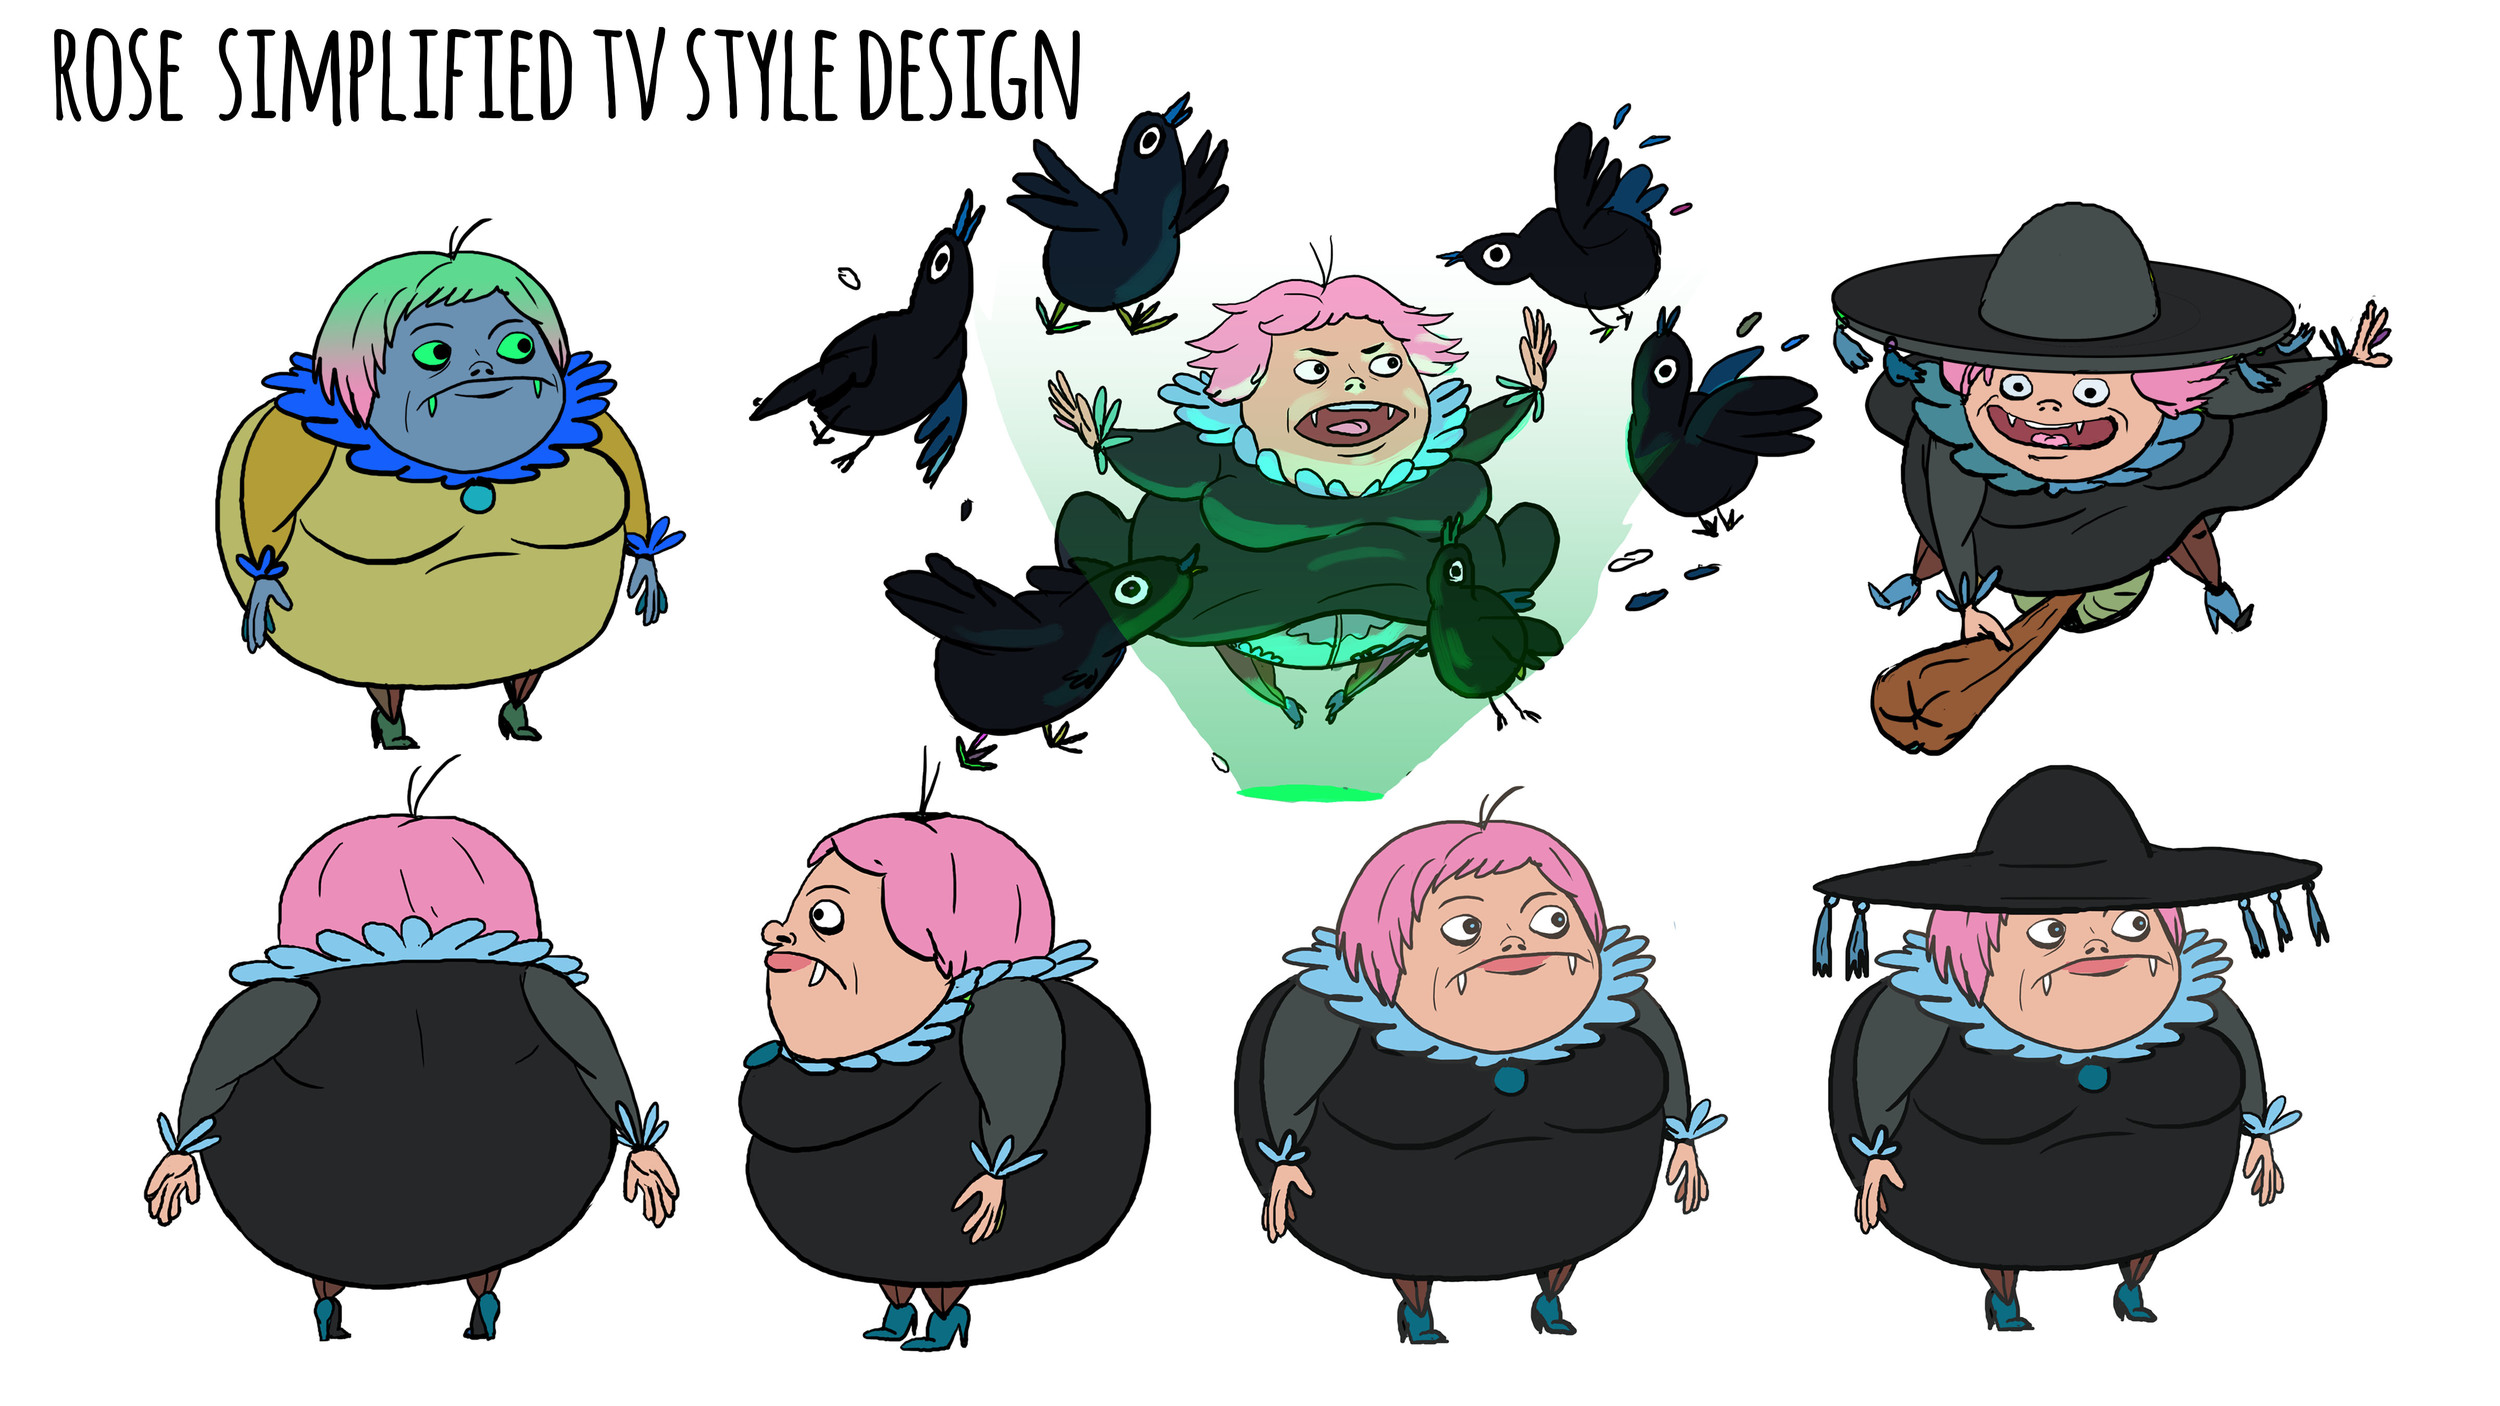 rose simplified tv design.jpg